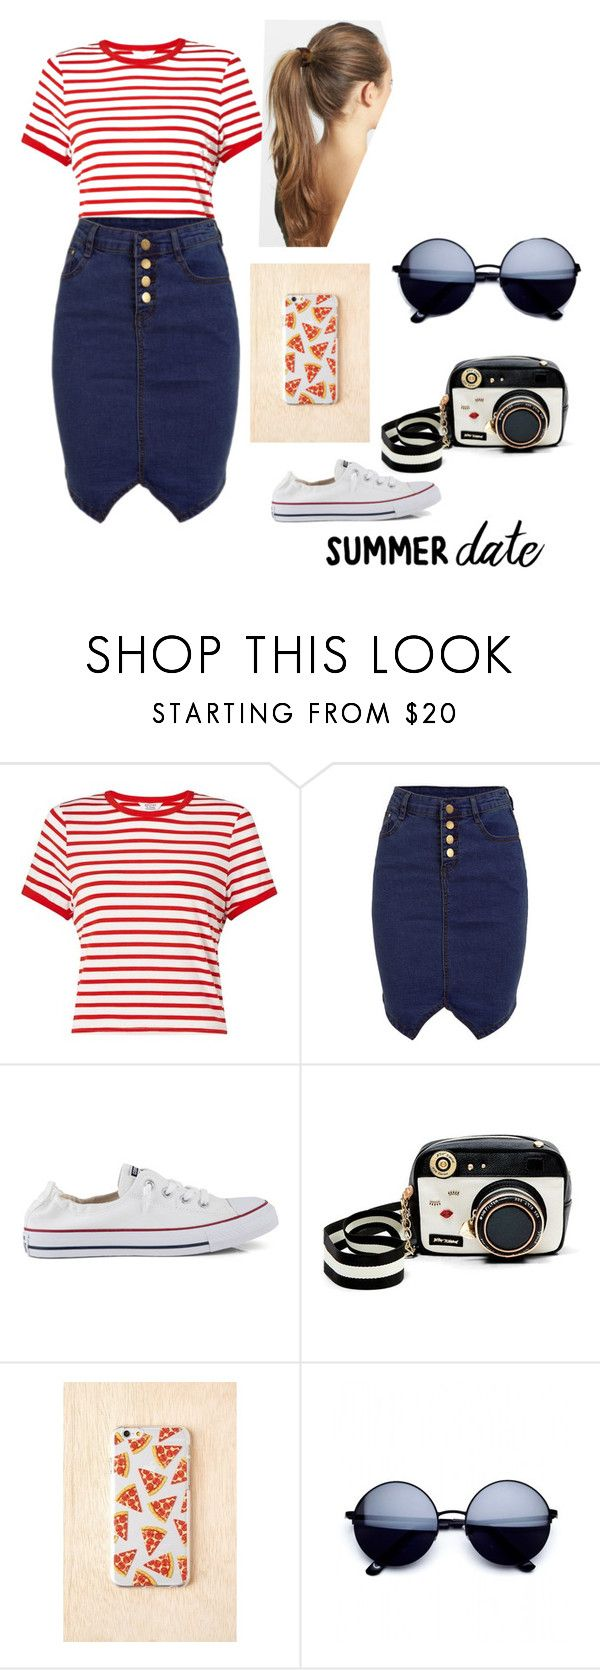 """Apostolic Pentecostal State fair outfit"" by ecord1 ❤ liked on Polyvore featuring Miss Selfridge, Converse, Betsey Johnson, Skinnydip, France Luxe, statefair, summerdate and apostolicpentecostal"